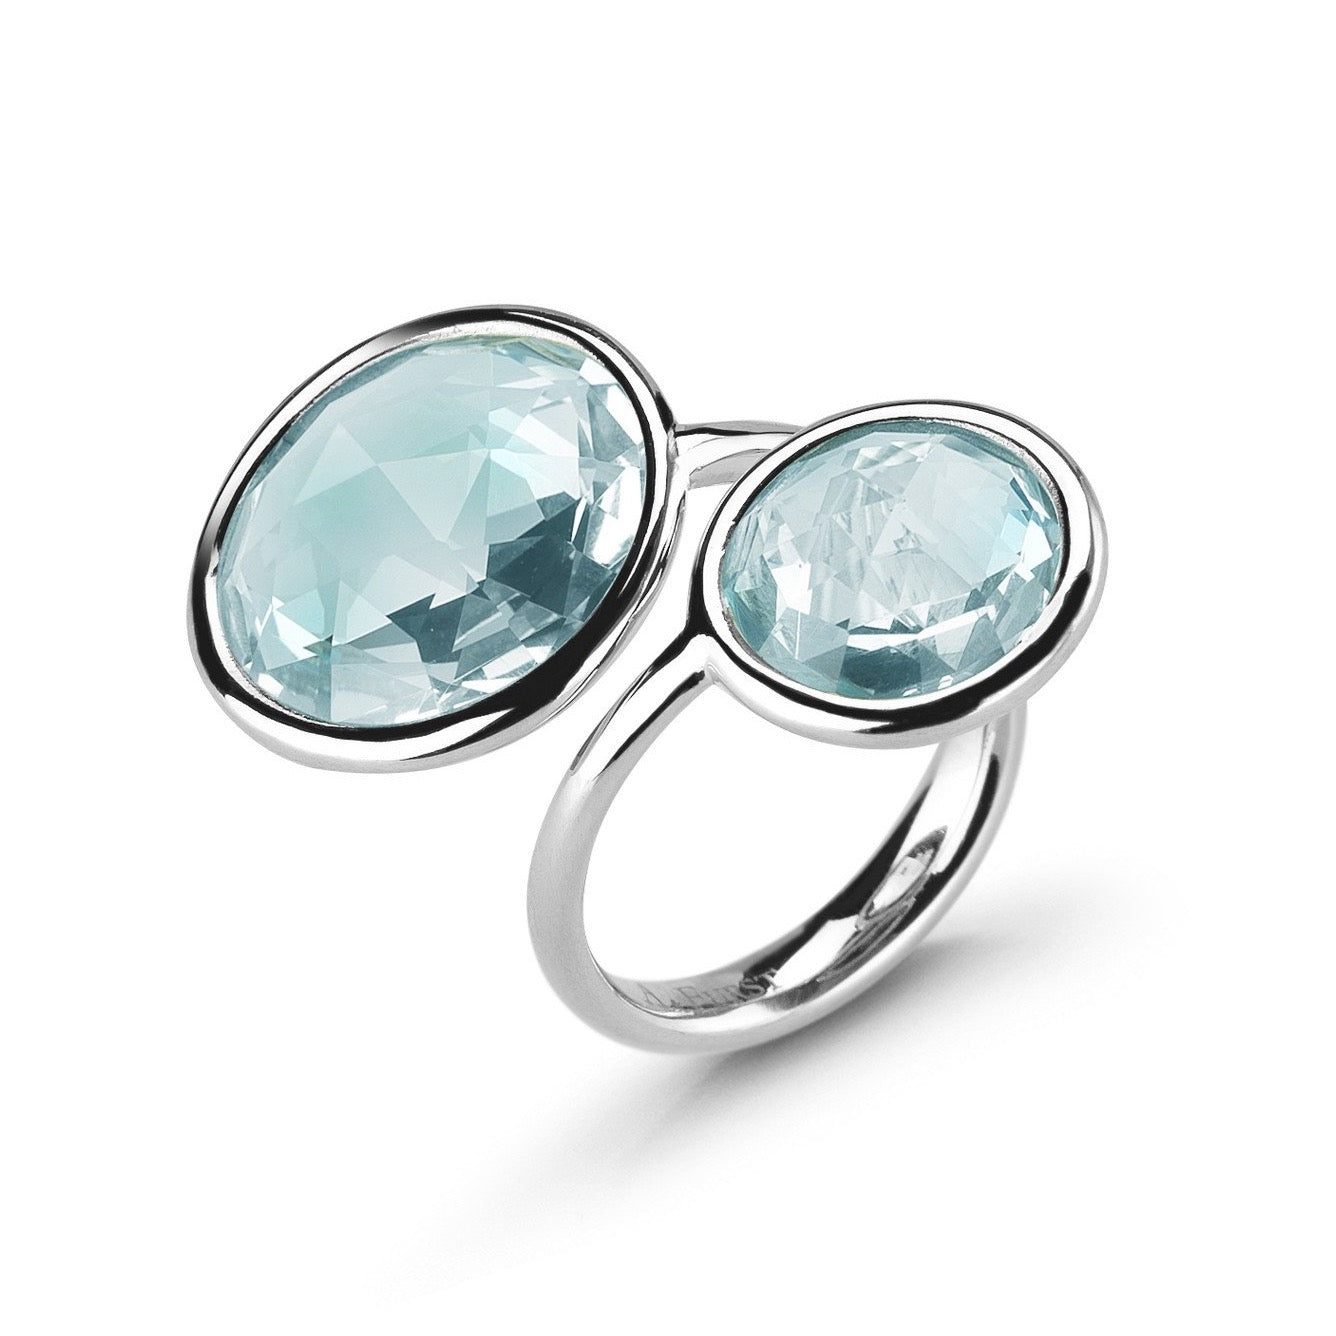 "A & Furst ""Jicky"" ""Toi et Moi"" Ring with Blue Topaz, 18k White Gold."